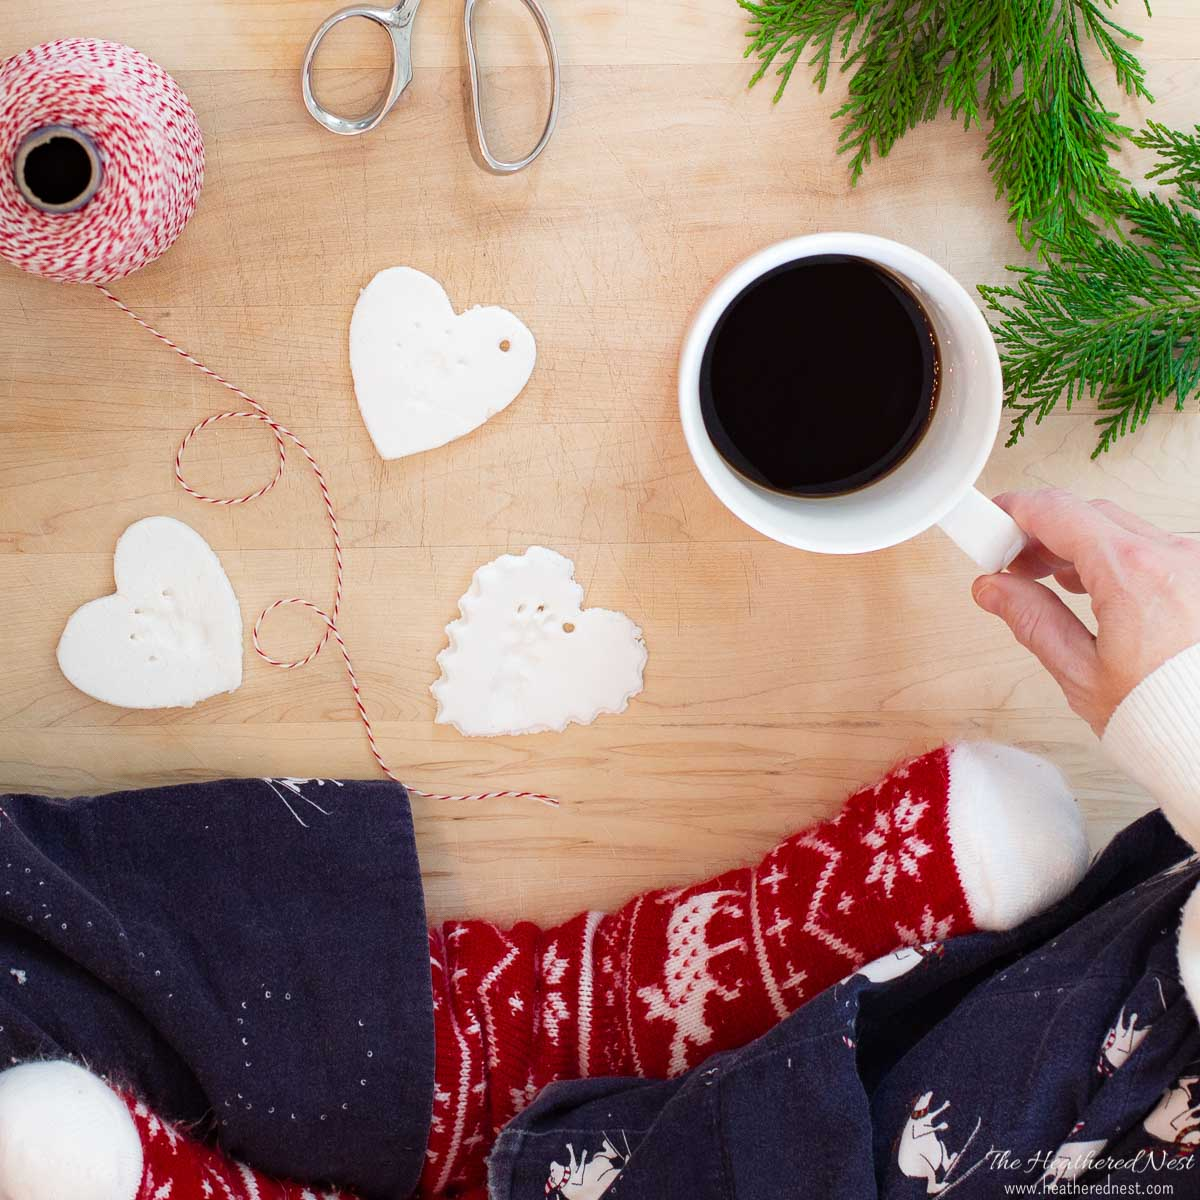 woman sitting cross-legged in Christmas pjs by a wood cutting board with three salt dough ornaments in heart-shapes. Also pictured butcher's twine, scissors and a cup of coffee